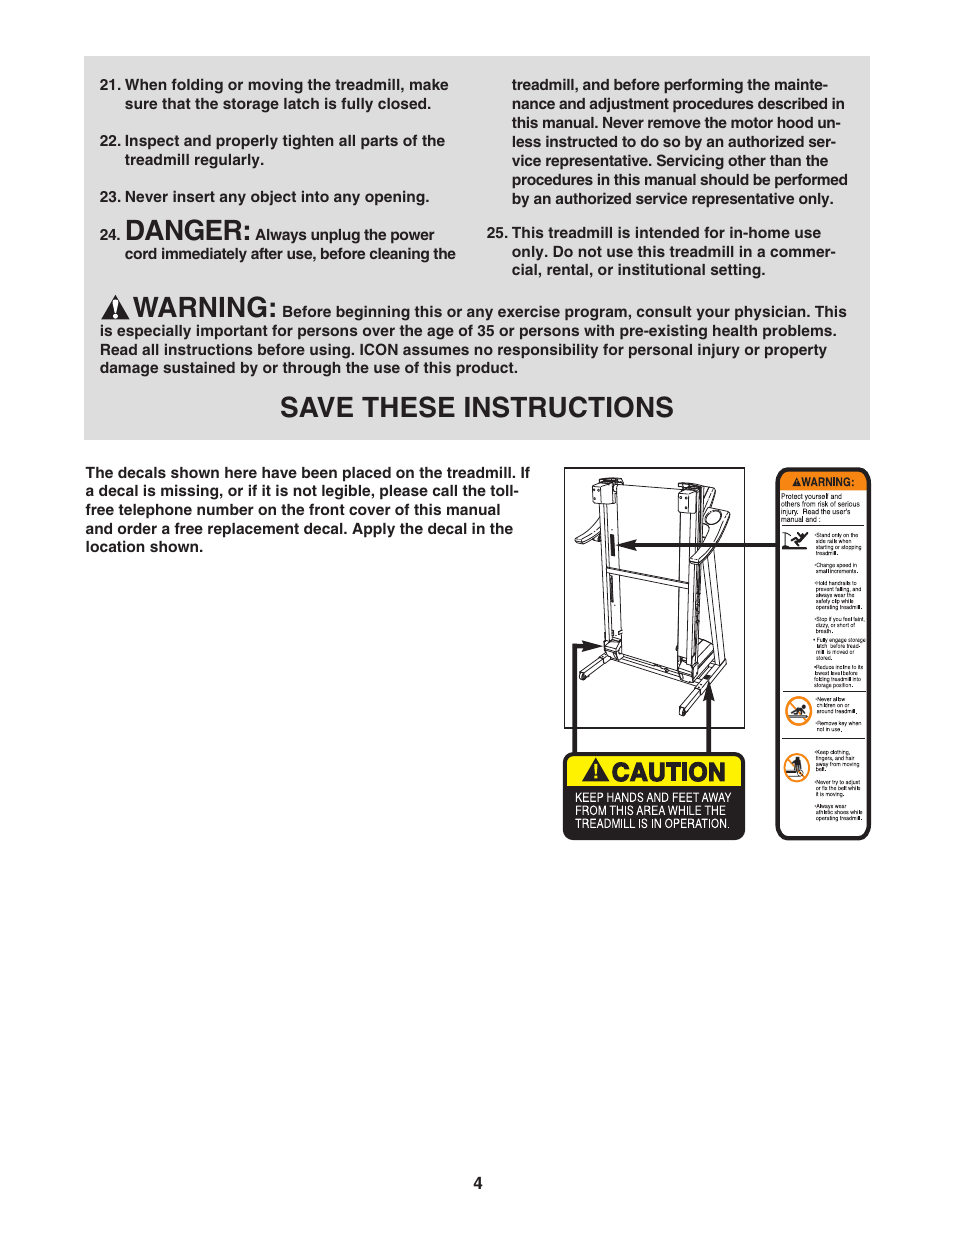 Danger, Warning, Save these instructions | ProForm 6 0 GSX PFTL51105